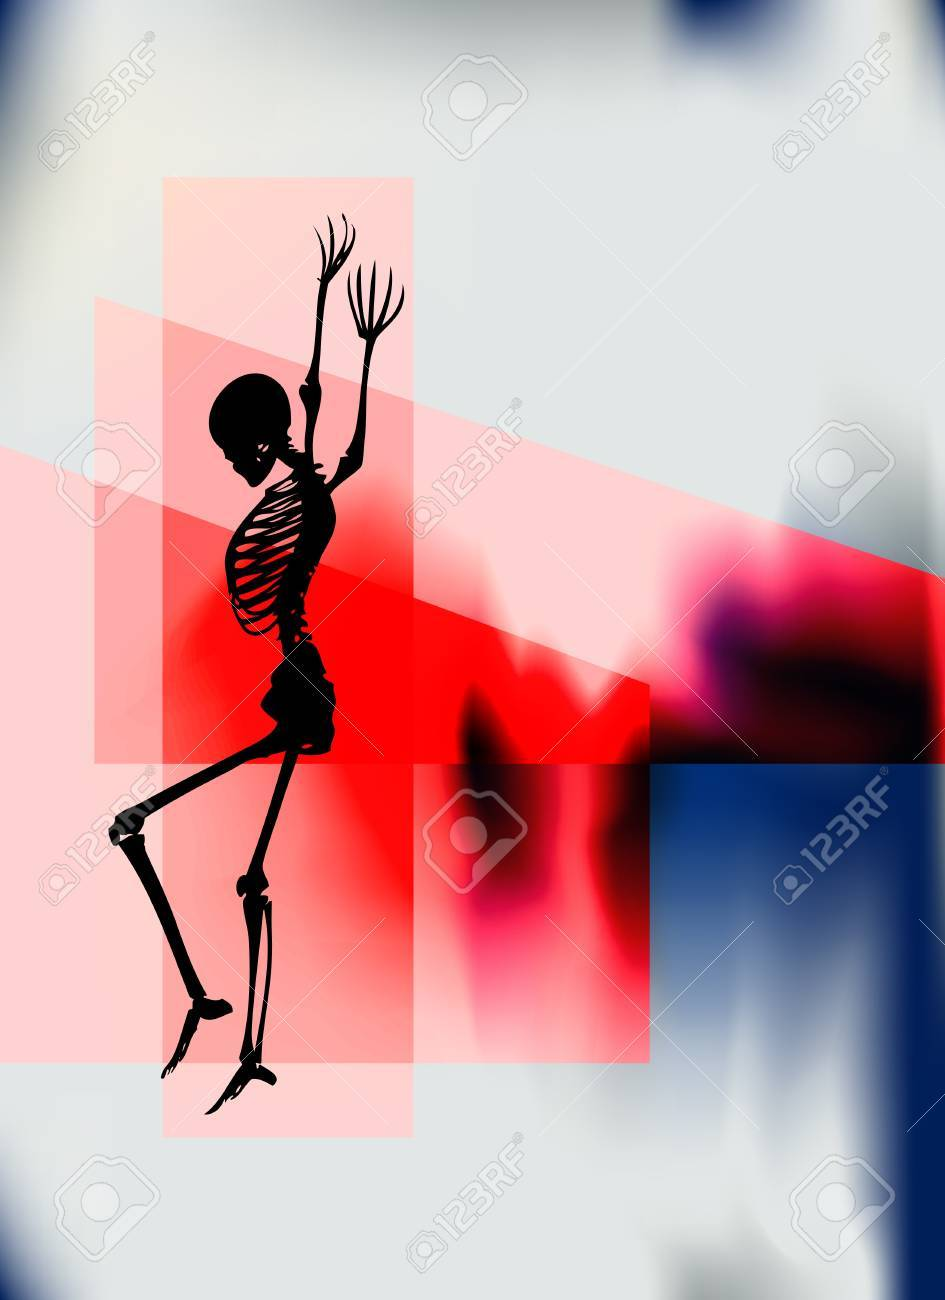 Halloween Night Poster with a dancing skeleton for a party or event Stock Vector - 18936341